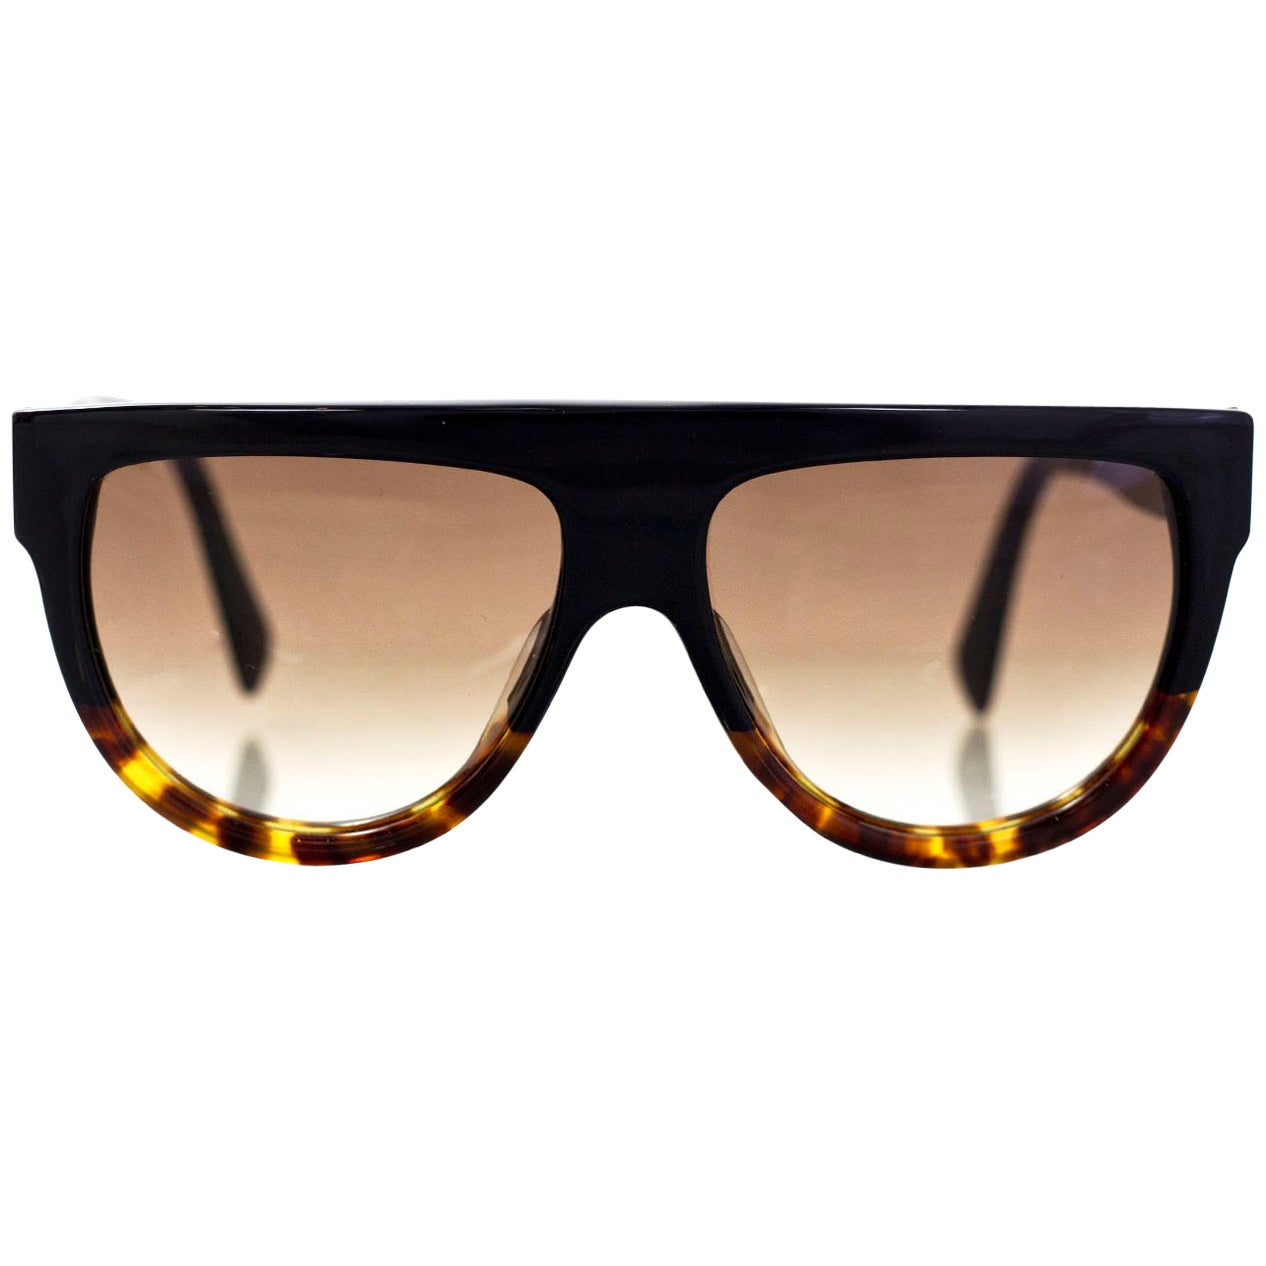 8facd82bd1 ... Black Source · Celine Shadow Flat Top Sunglasses with Case For Sale at  1stdibs